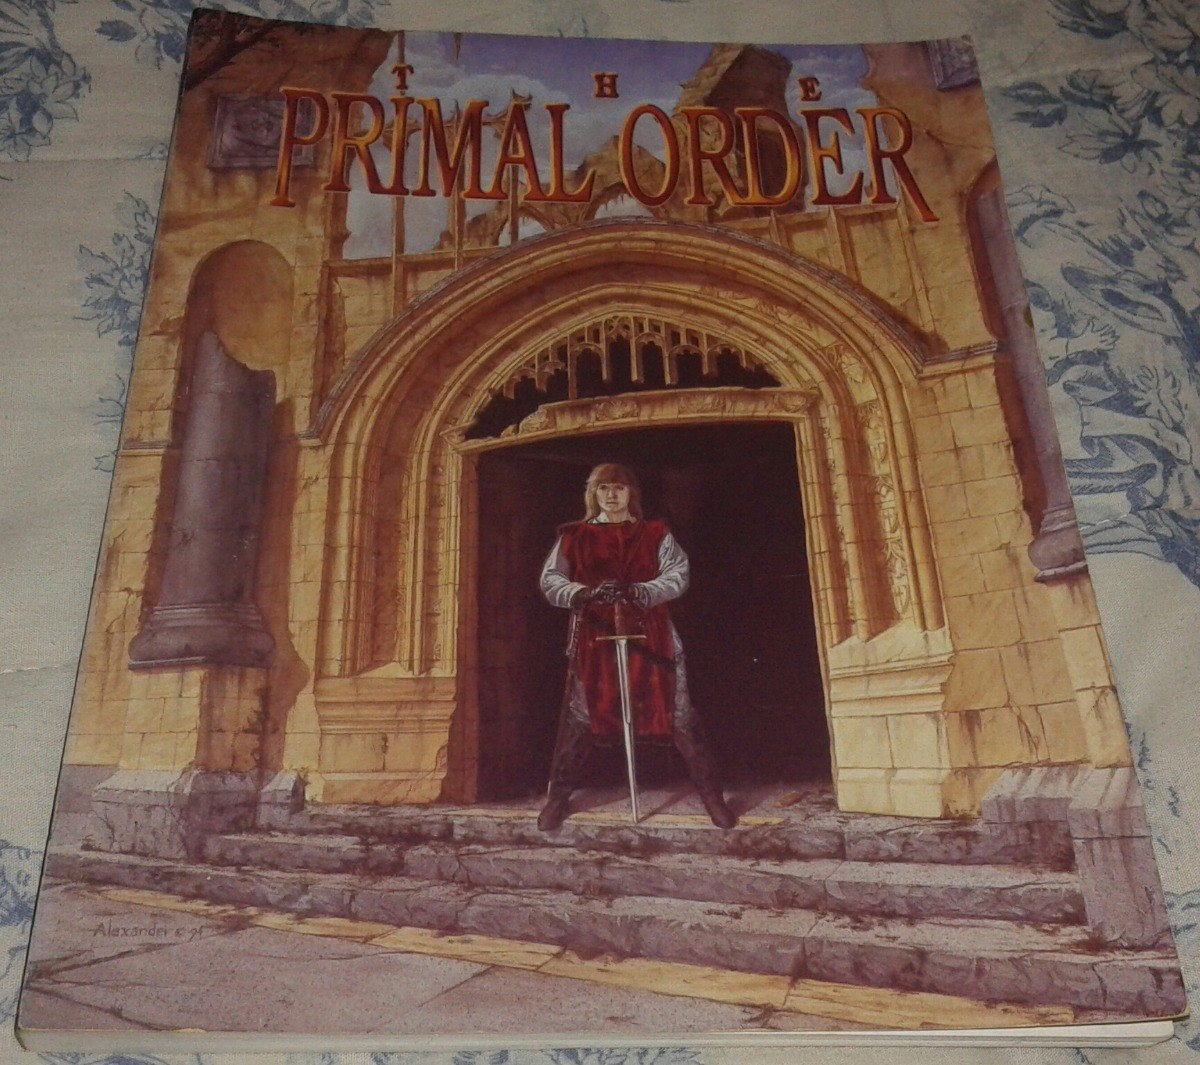 Rpg The Primal Order Peter Adkison Wizards Of The Coast 1998